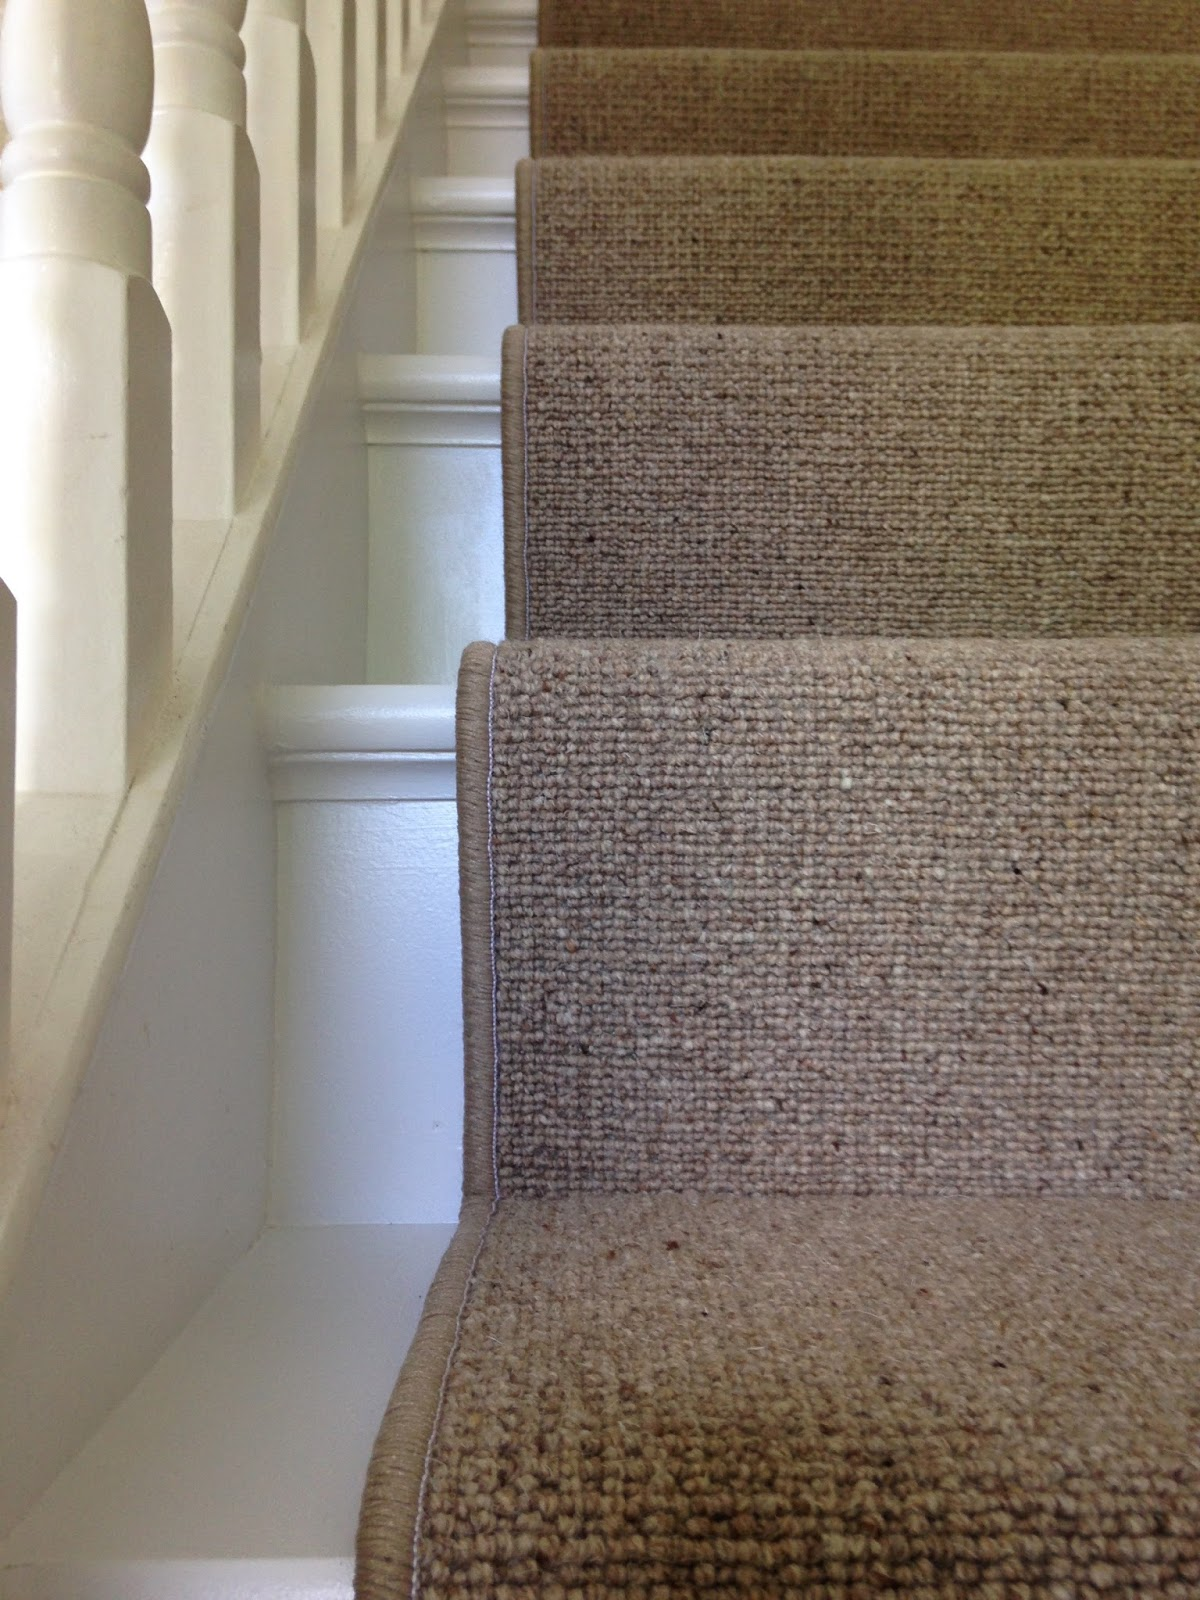 Replacing Broadloom Carpet With A Stair Runner Maison Jen | Seagrass Carpet On Stairs | Gray Wood | Hard Wearing | Grey | Stair Malay Chen Sisal | 80 20 Wool Carpet Stair